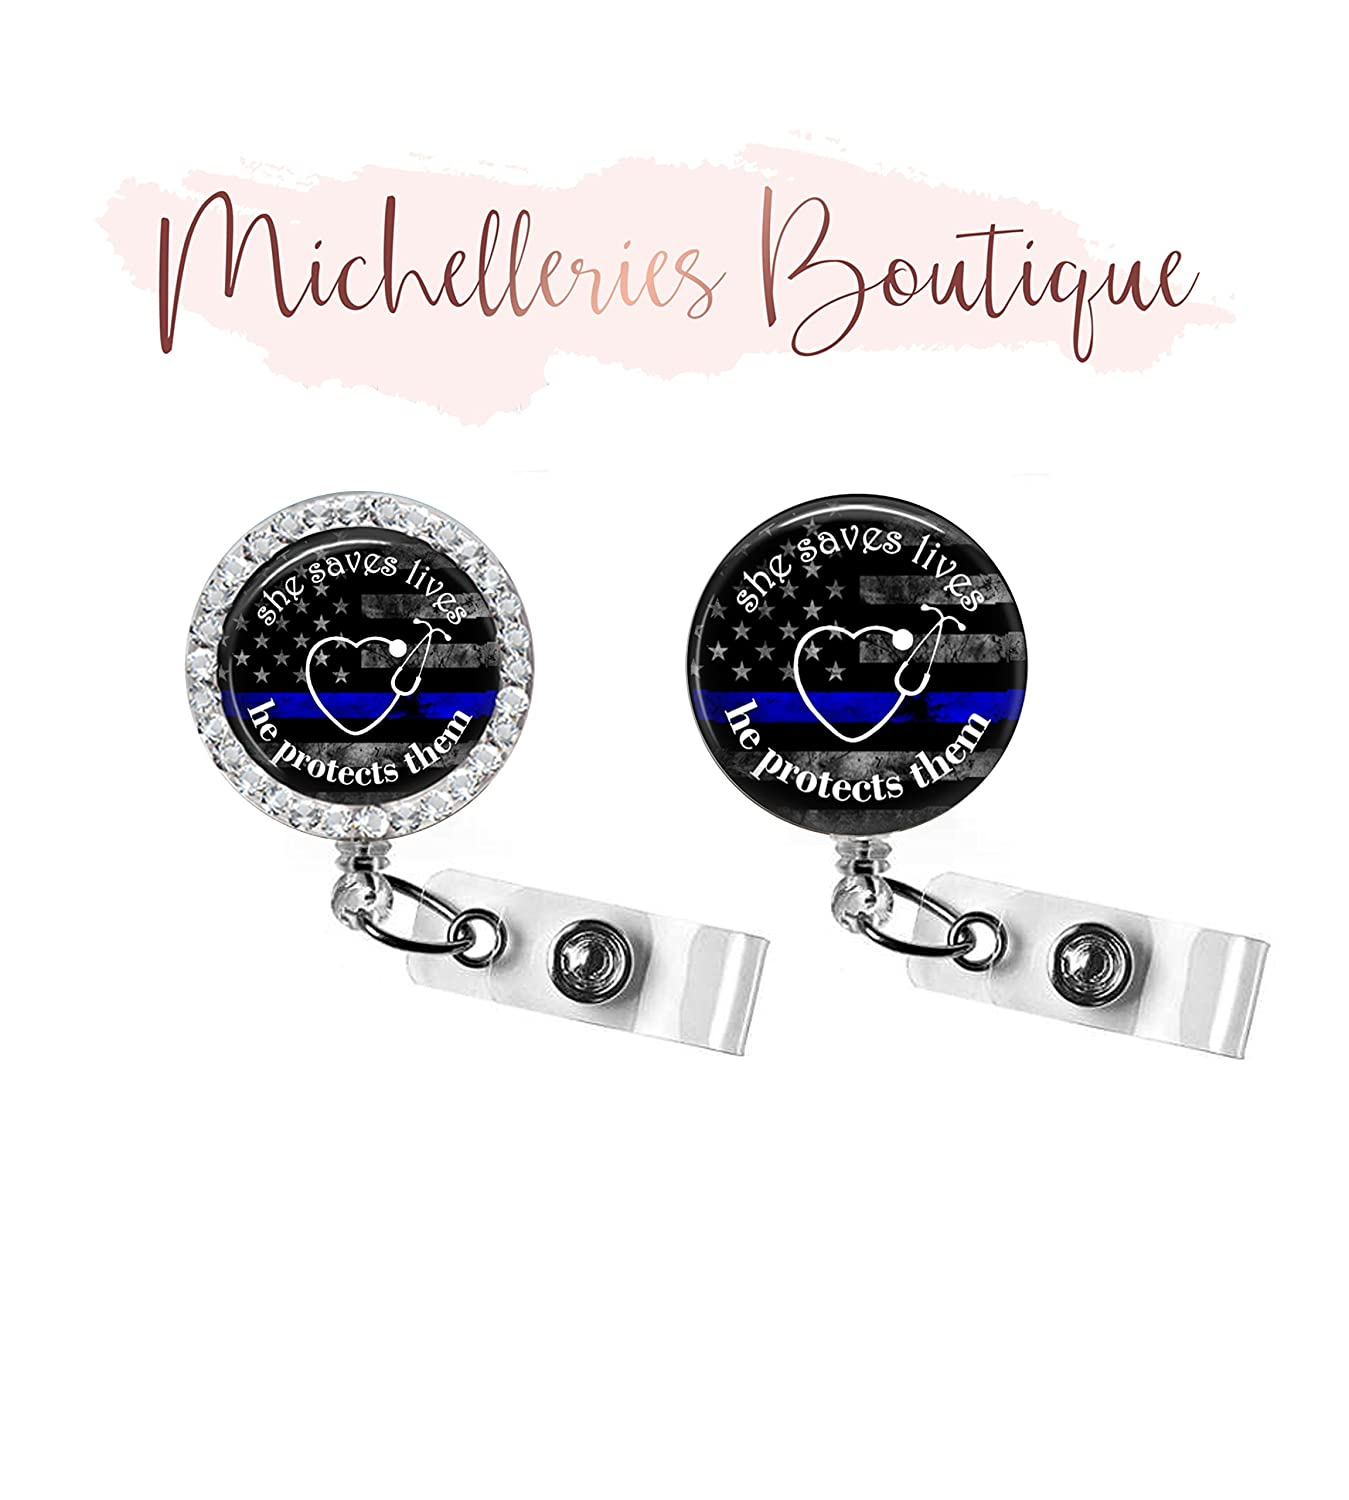 SHE SAVES LIVES HE PROTECTS THEM - THIN BLUE LINE RETRACTABLE BADGE REEL - POLICE BADGE HOLDER - NURSE - SUPPORT THE BLUE - POLICE WIFE - MB457P